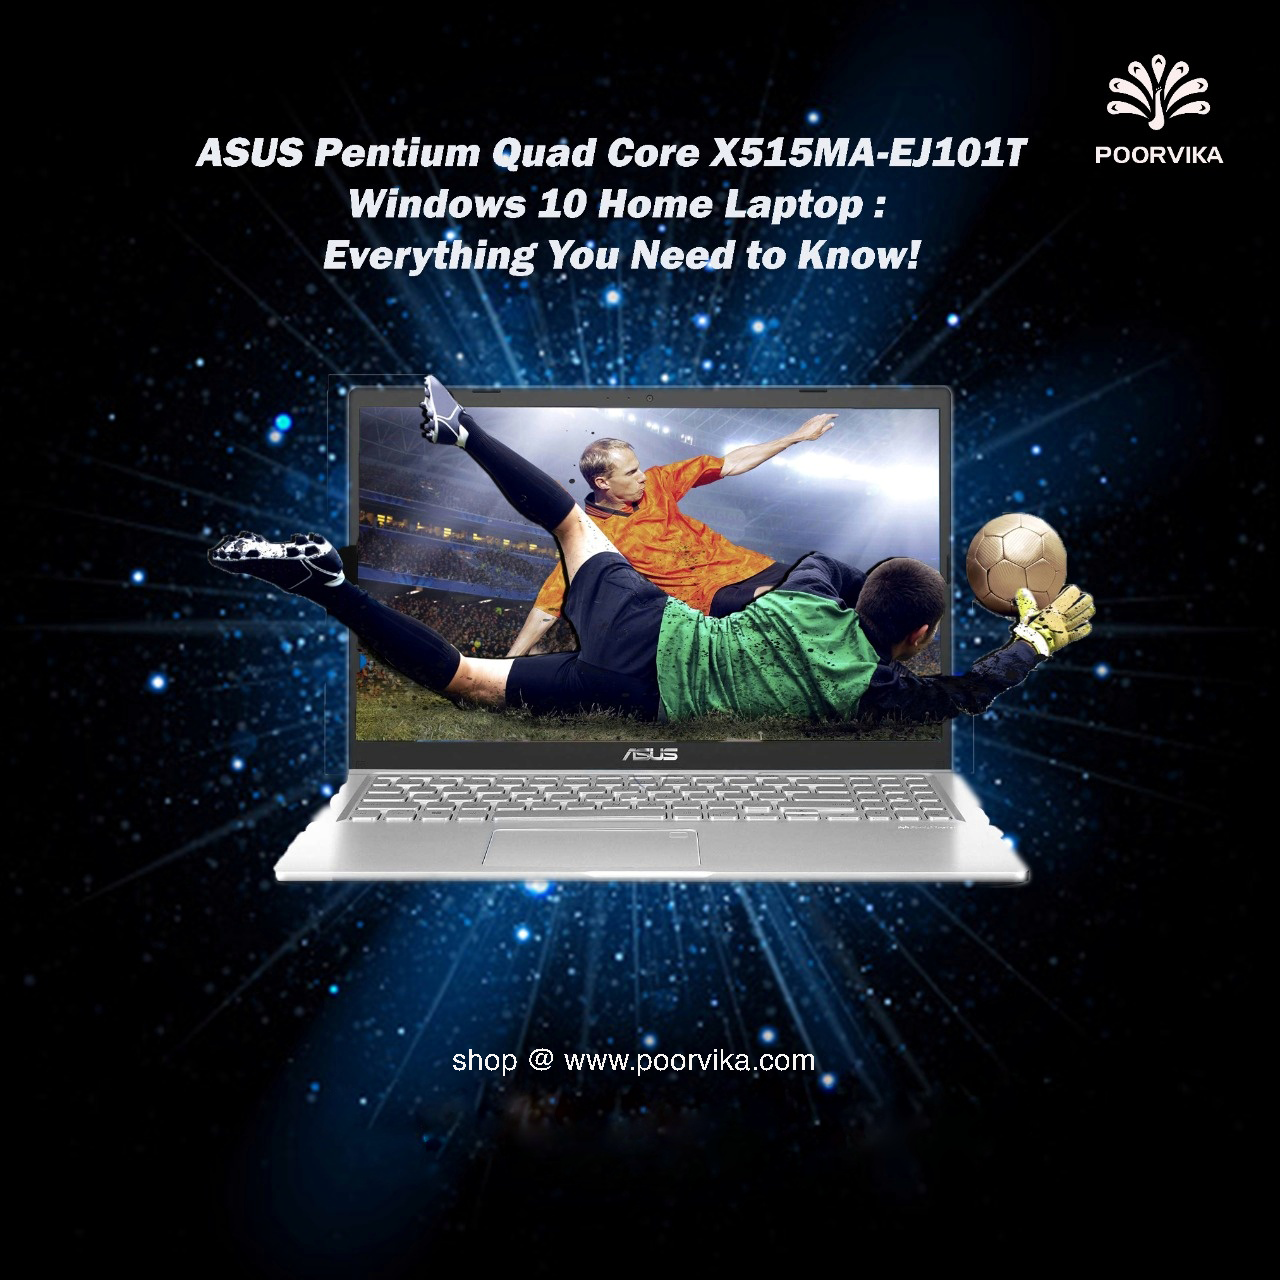 ASUS-Pentium-Quad-Core-X515MA-EJ101T-Windows-10-Home-Laptop-Everything-You-Need-to-Know